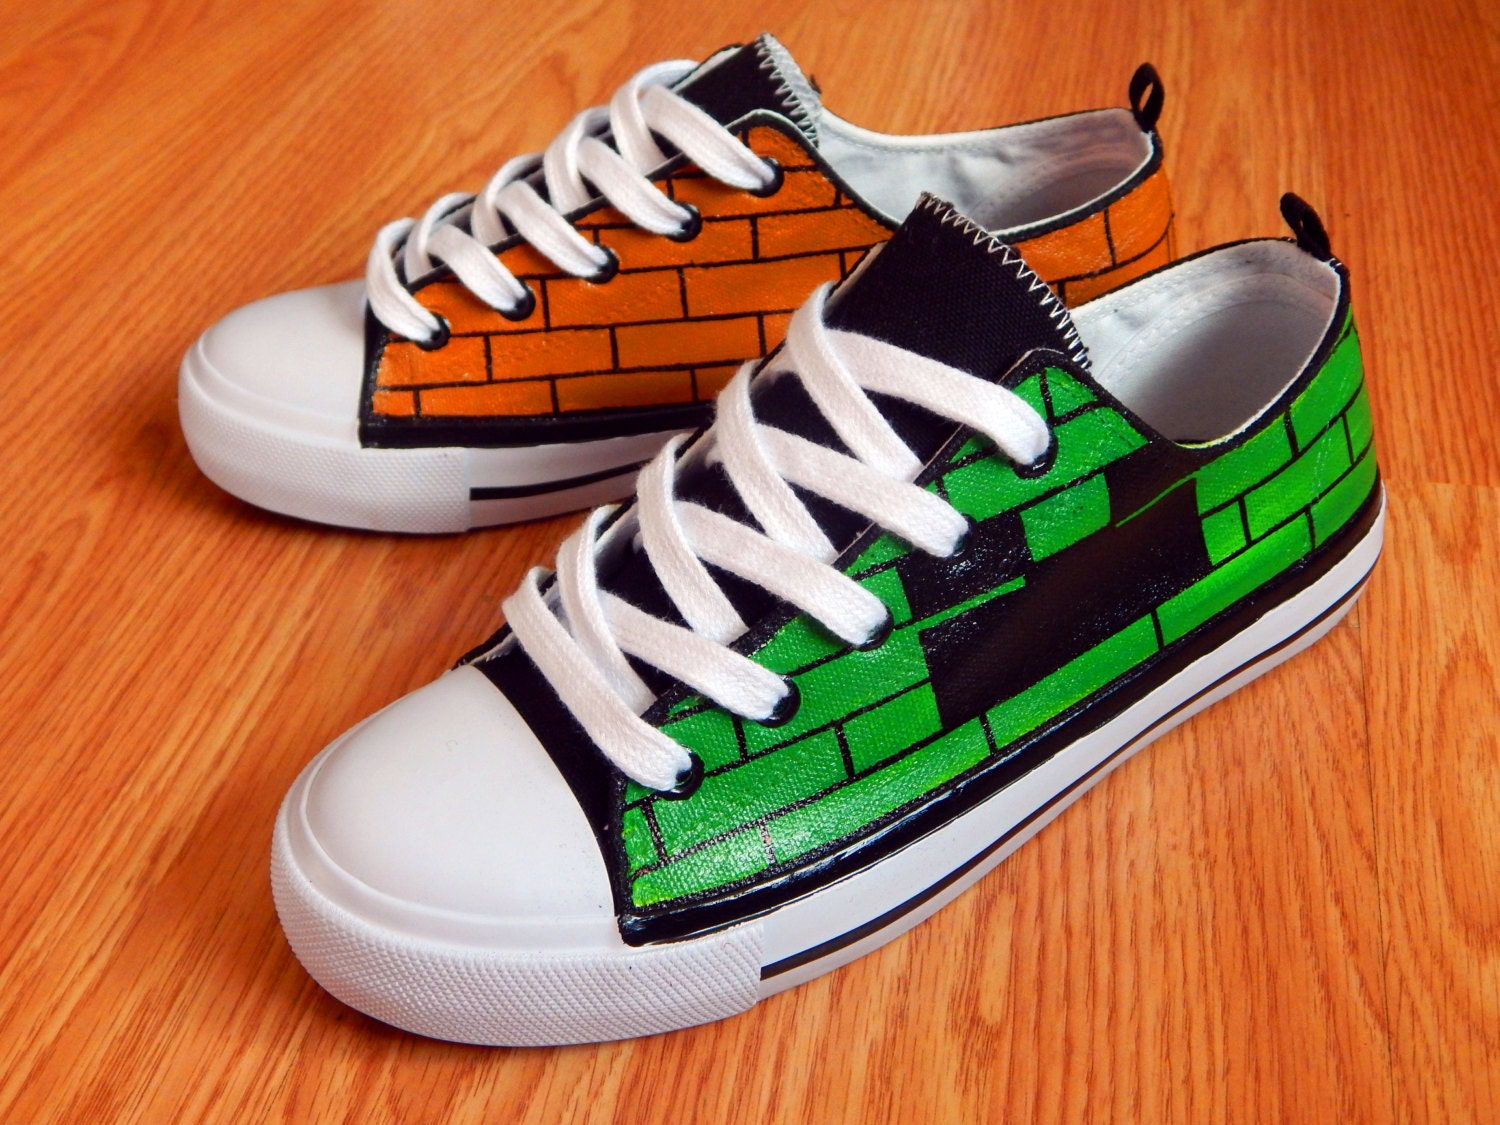 Best Type Of Paint For Canvas Shoes